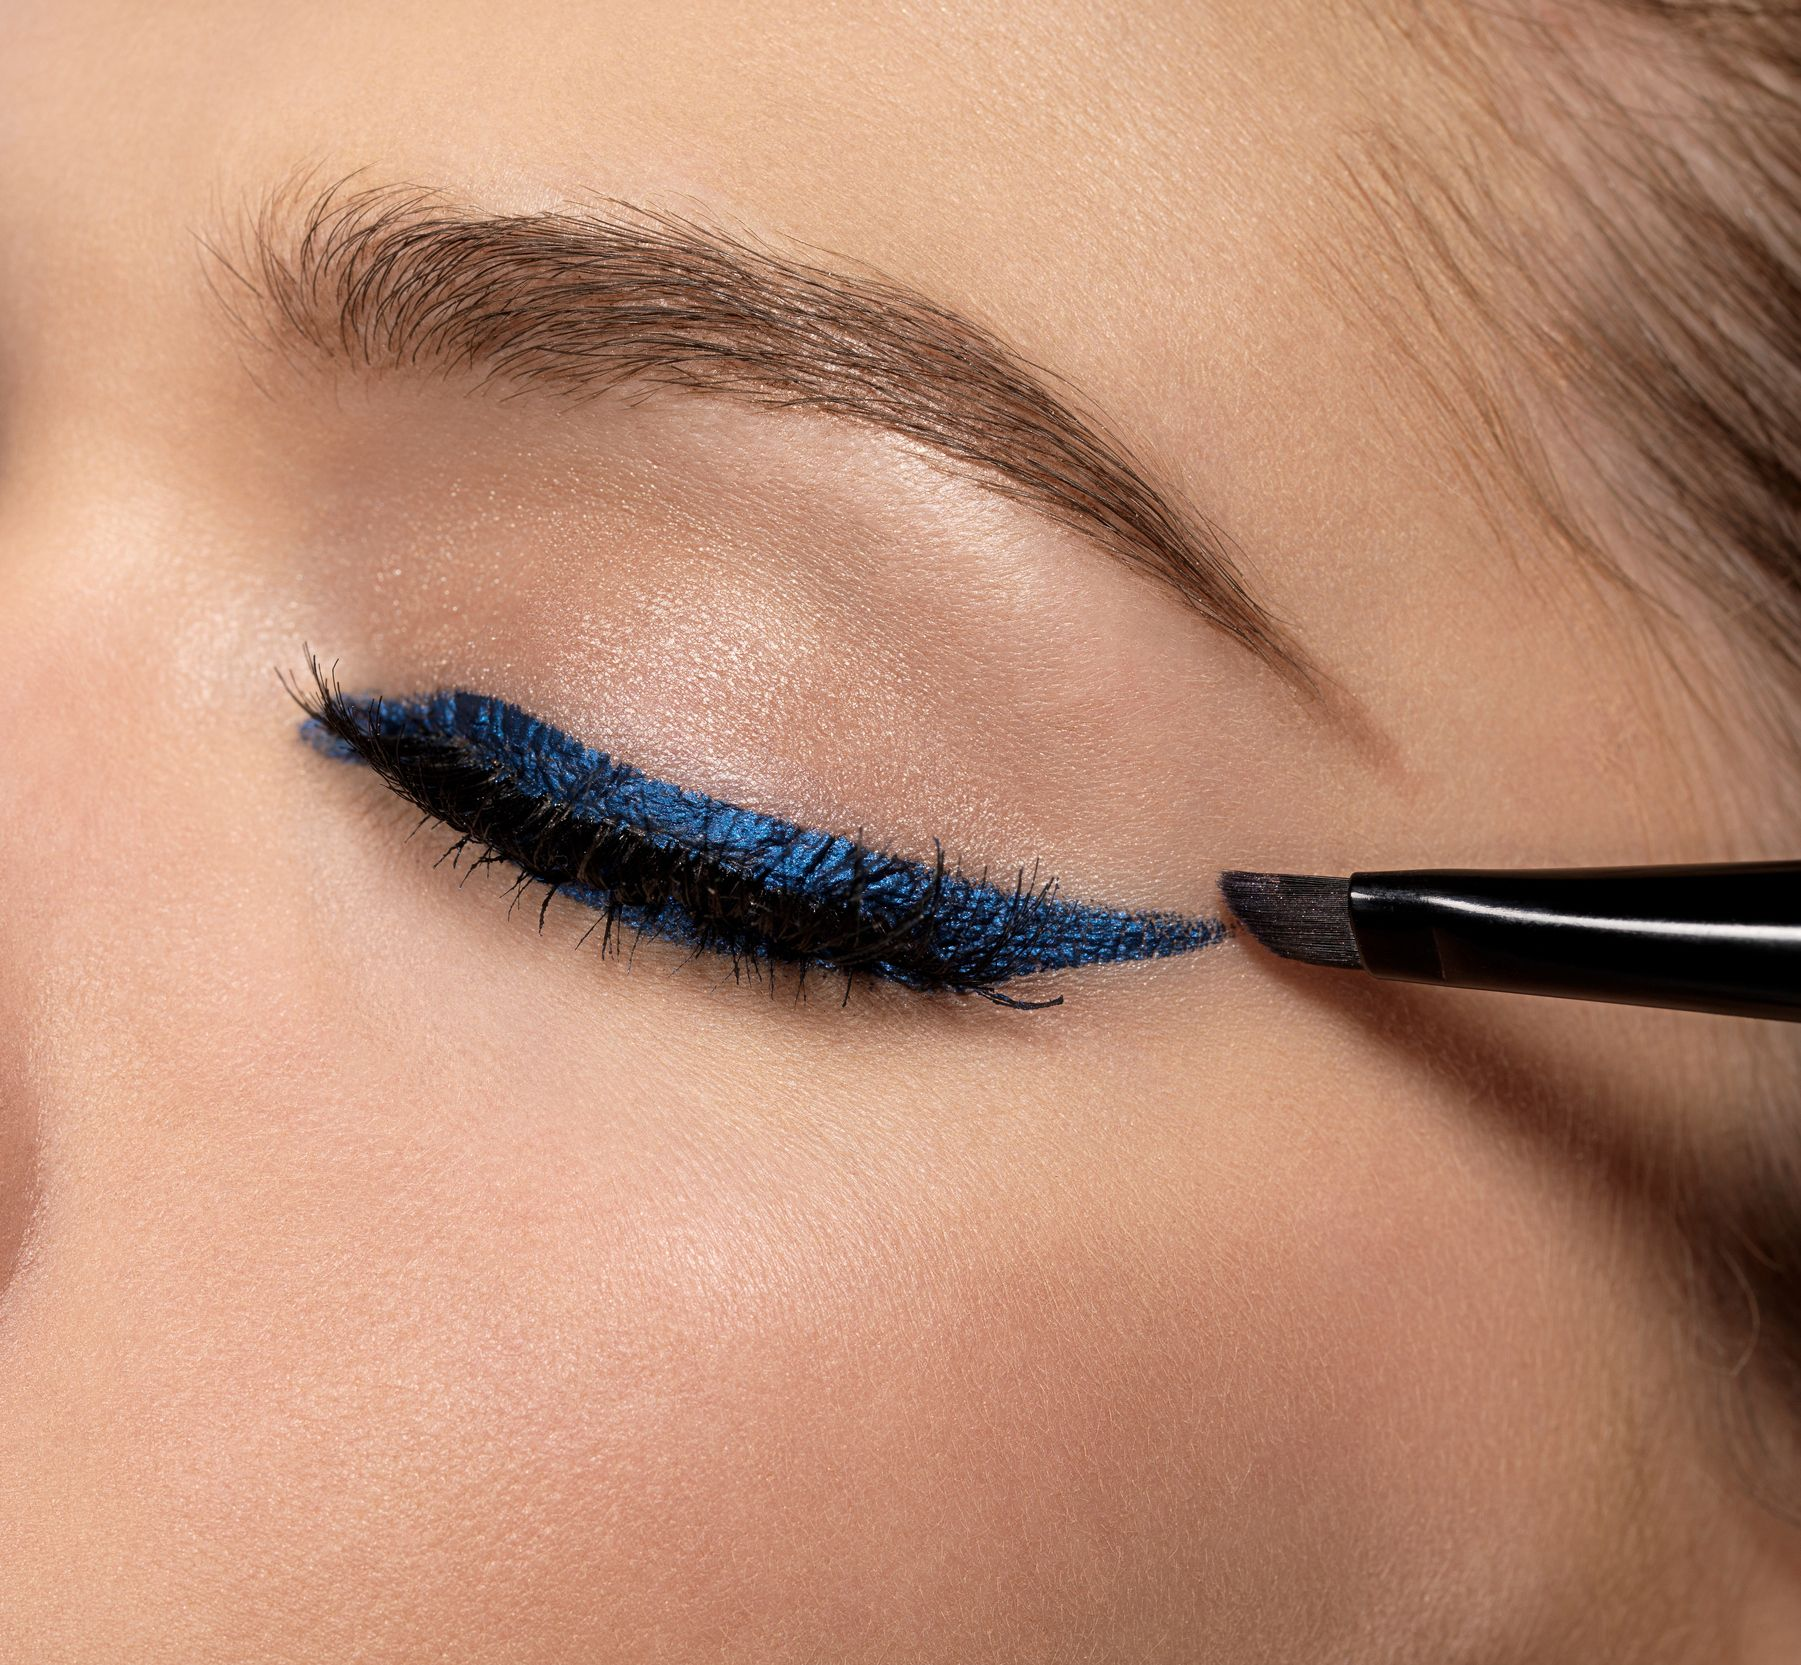 How to Apply Eyeliner Like a Pro - Step